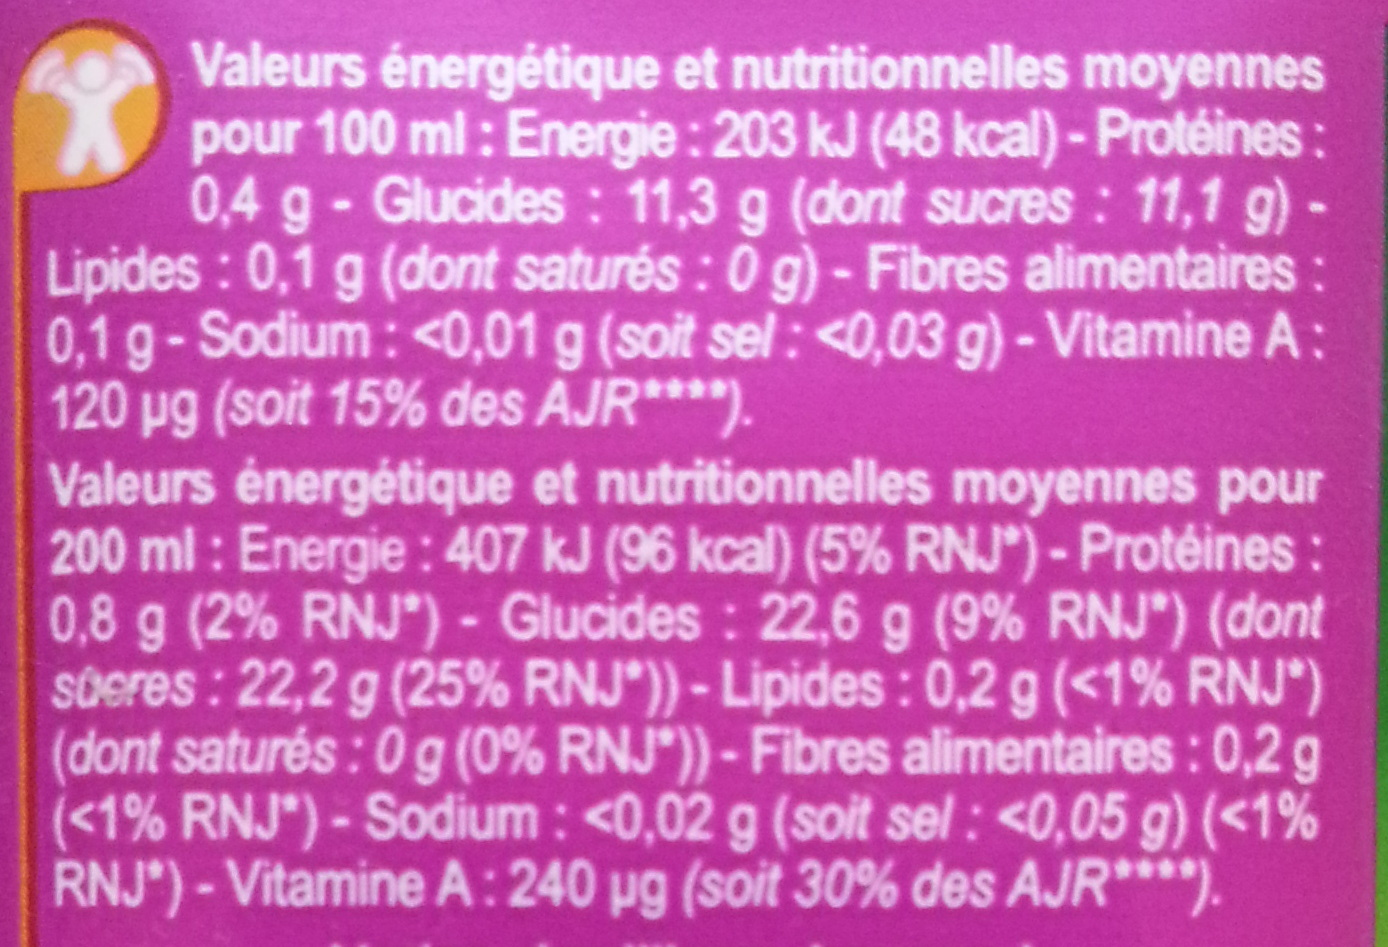 PUR JUS, Multifruits - Nutrition facts